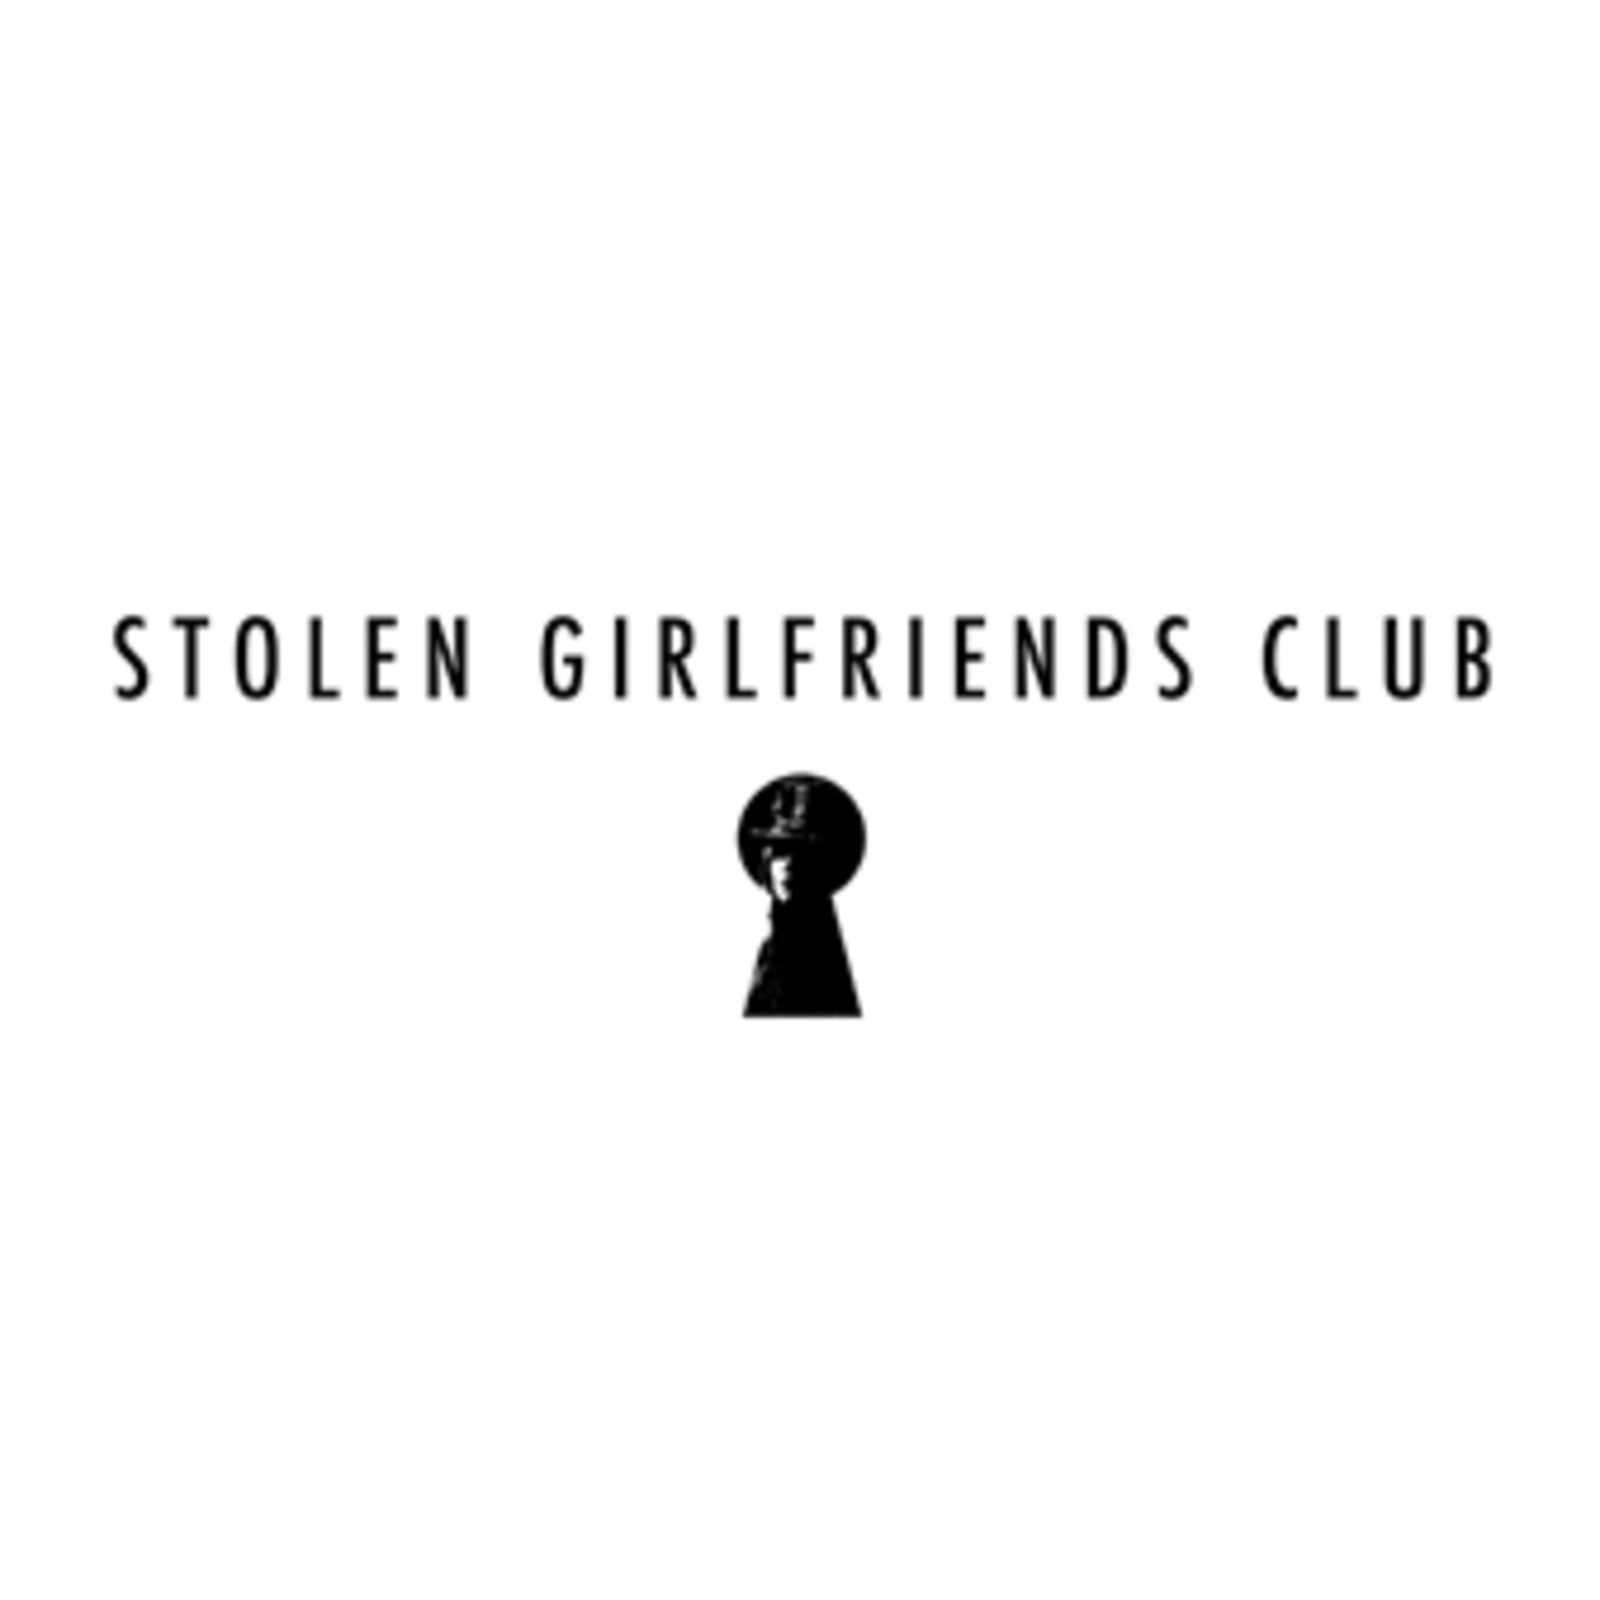 STOLEN GIRLFRIENDS CLUB